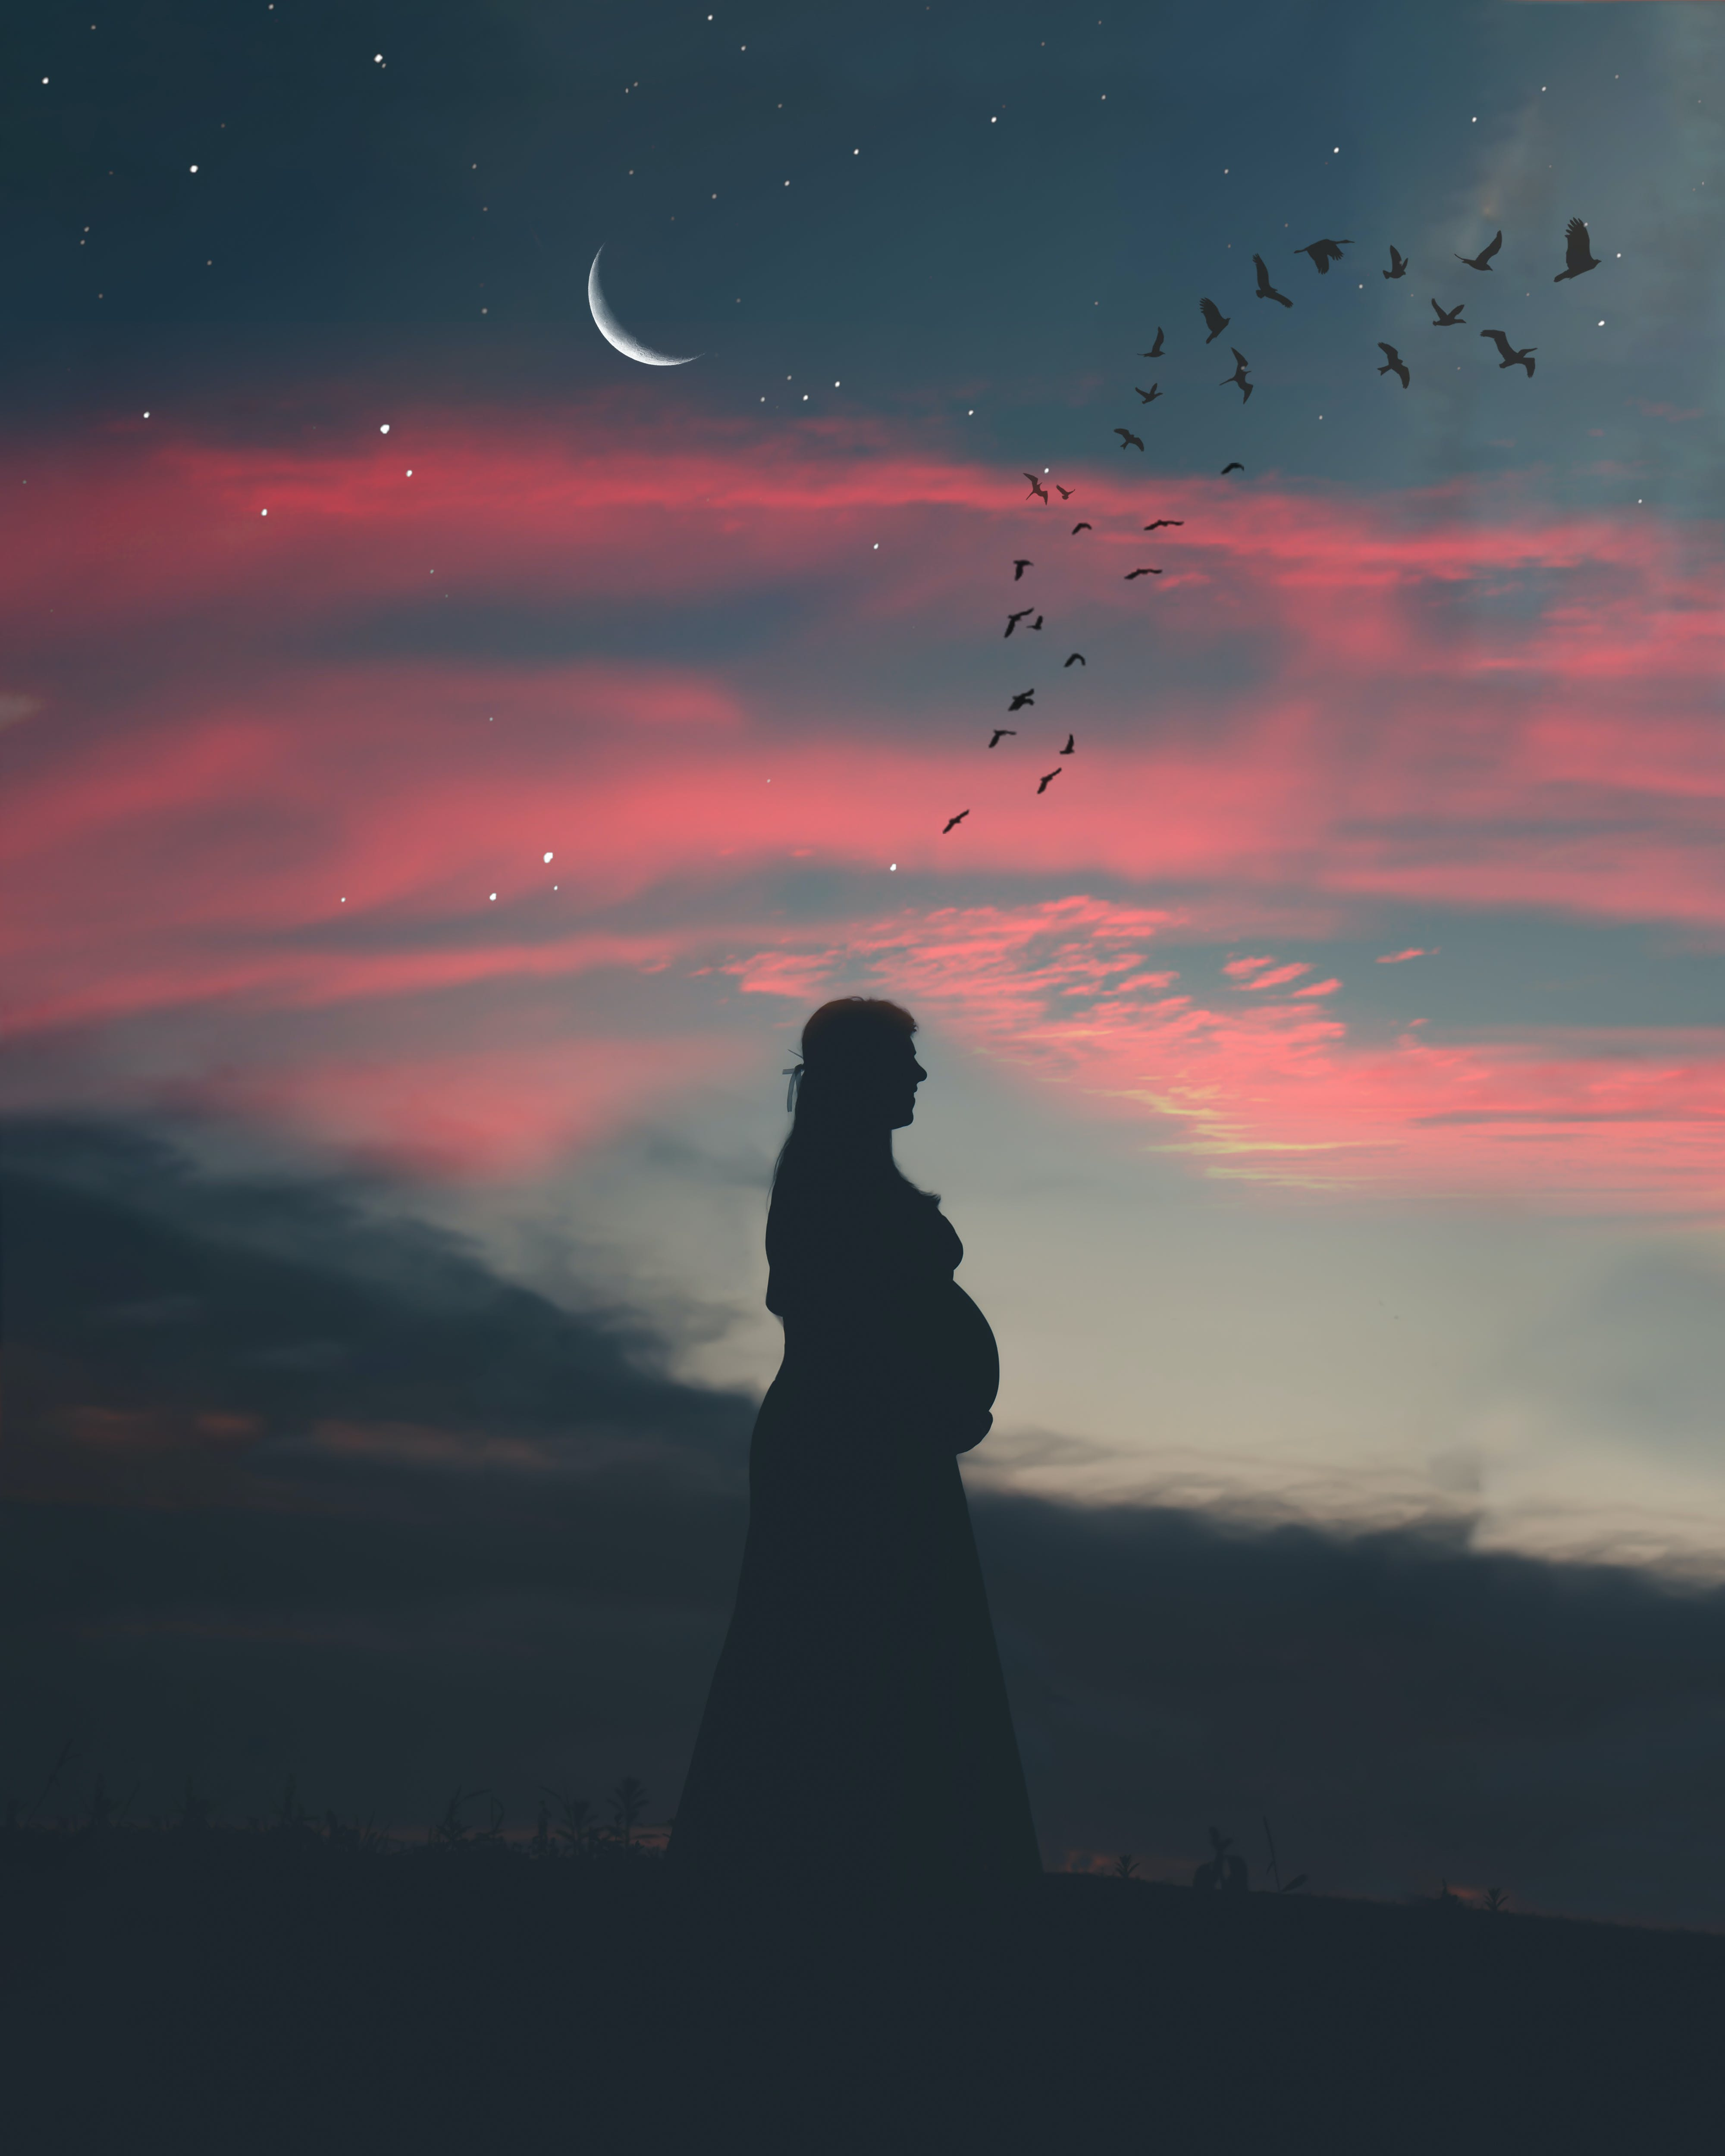 Pregnant Woman Under Cloudy Sky in Silhouette Photography